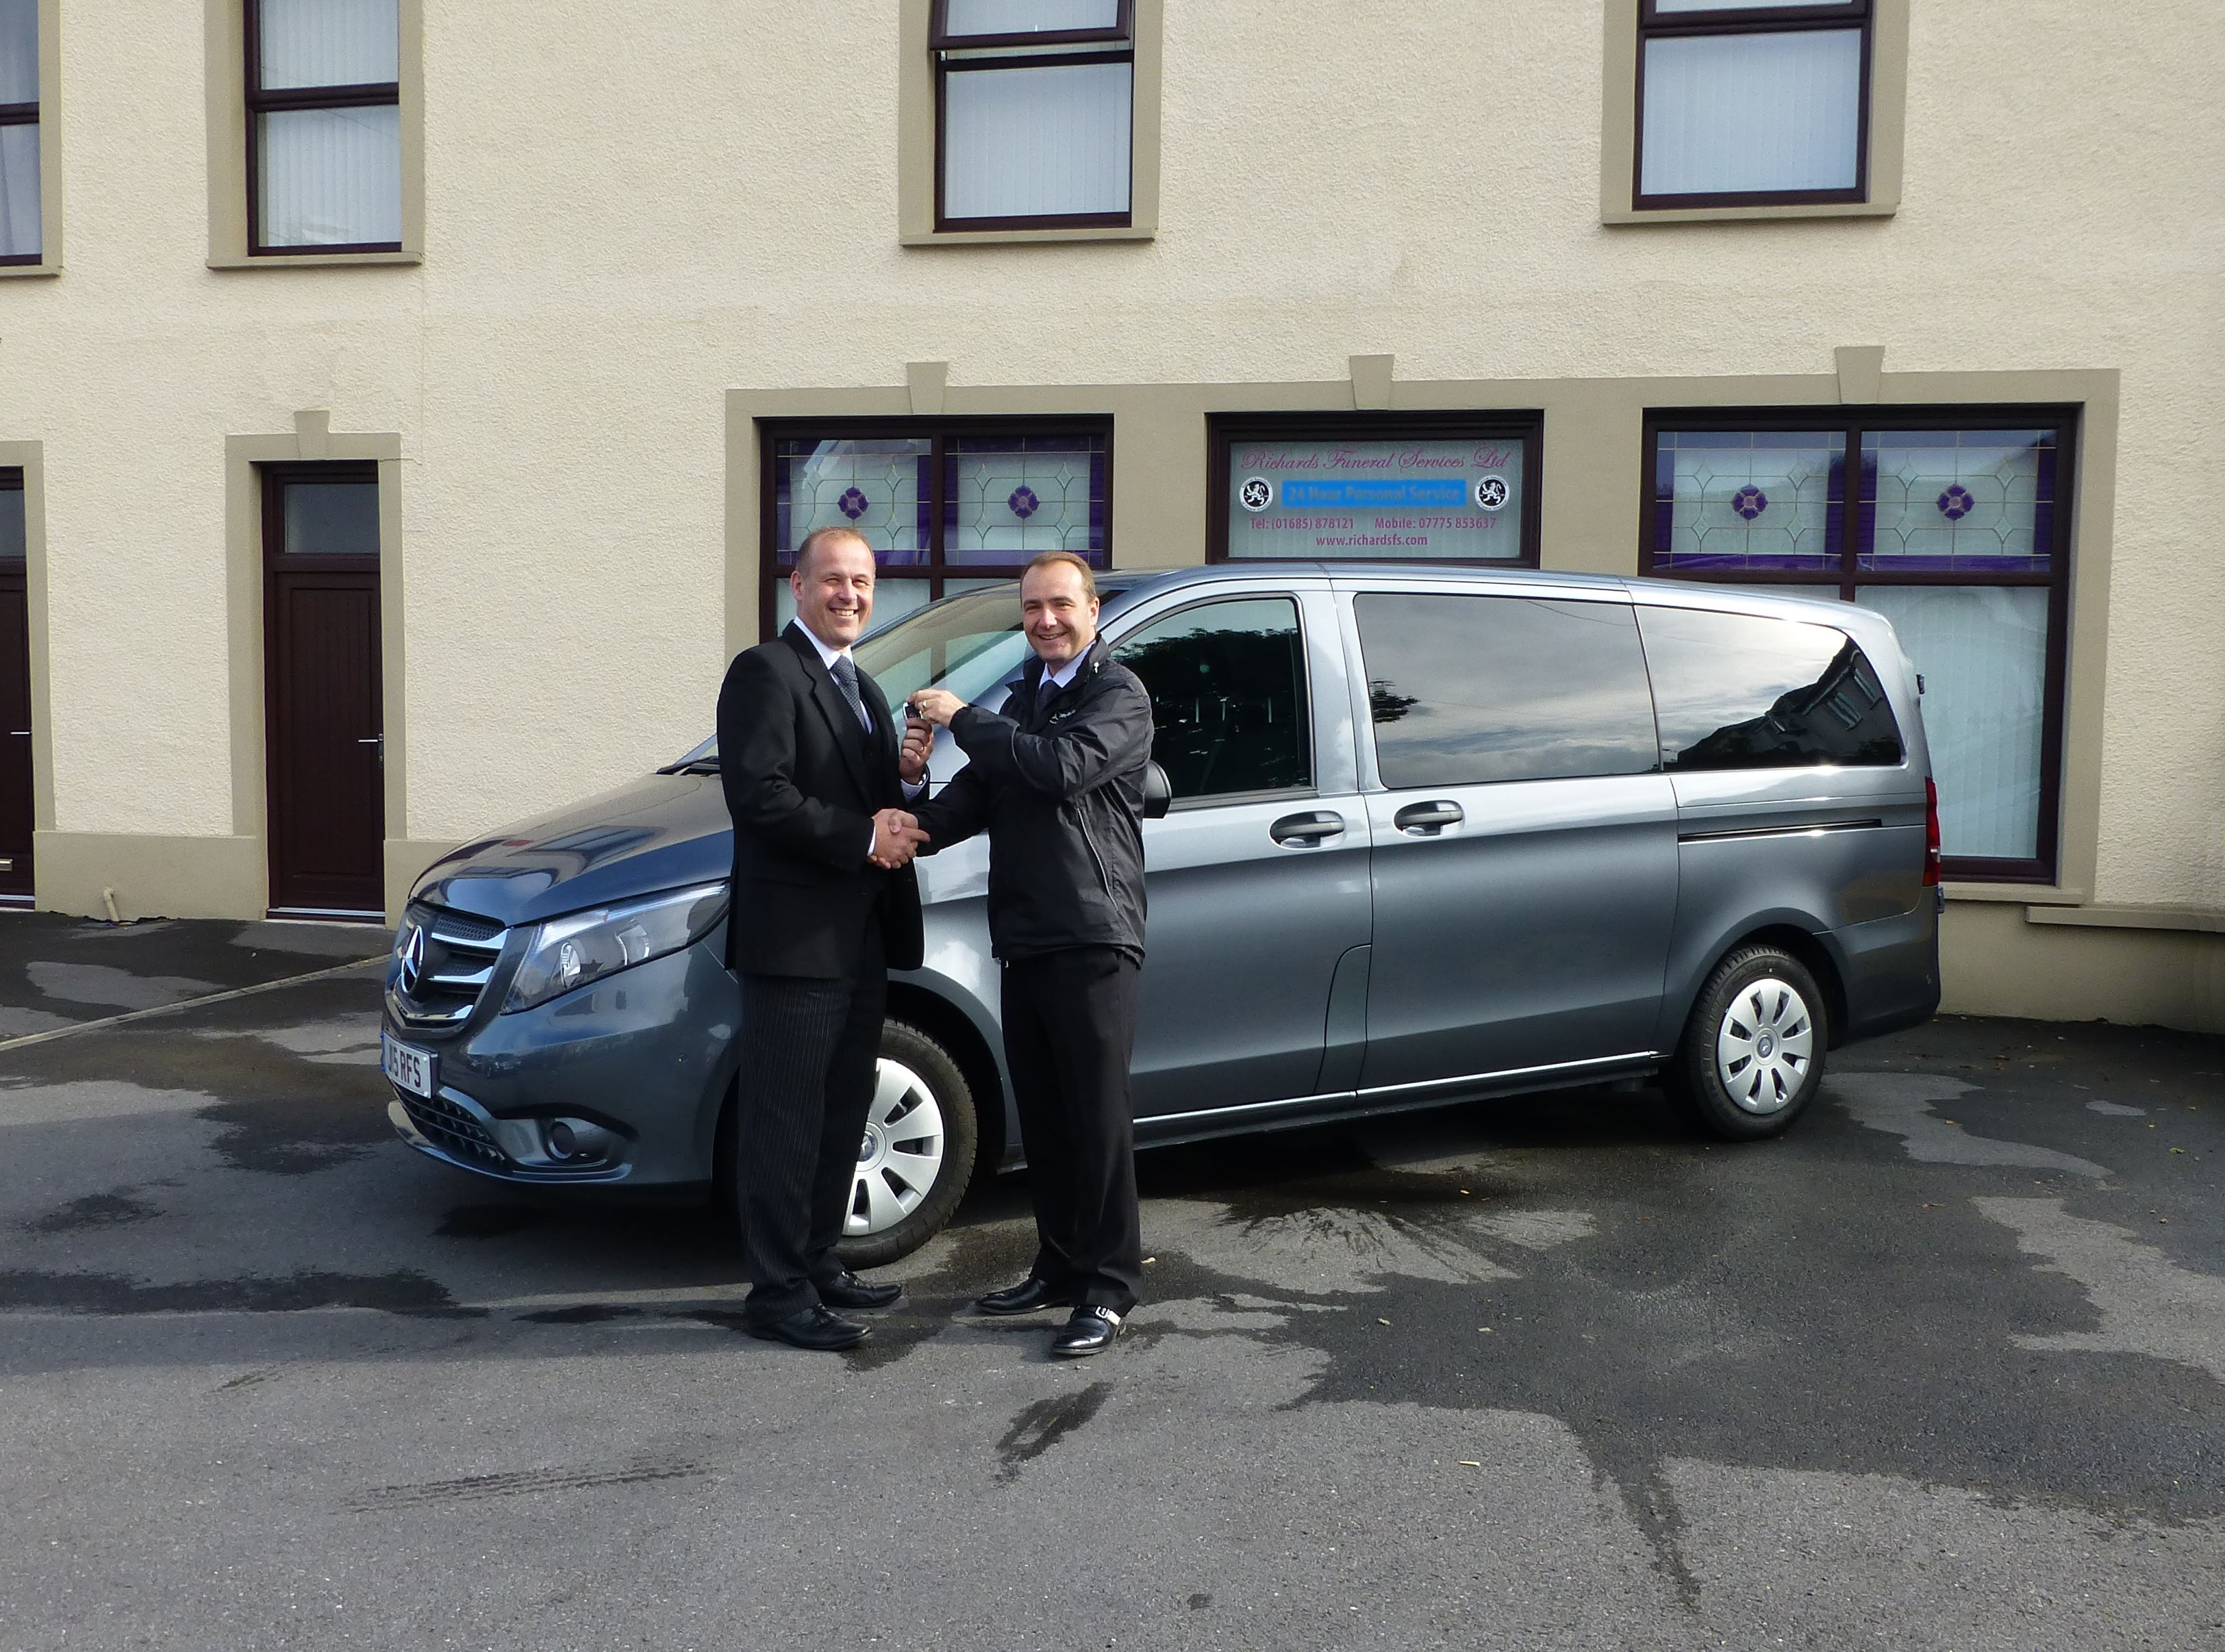 Why Richards Funeral Services Chose Bespoke Removal Vehicle Over Self-Build